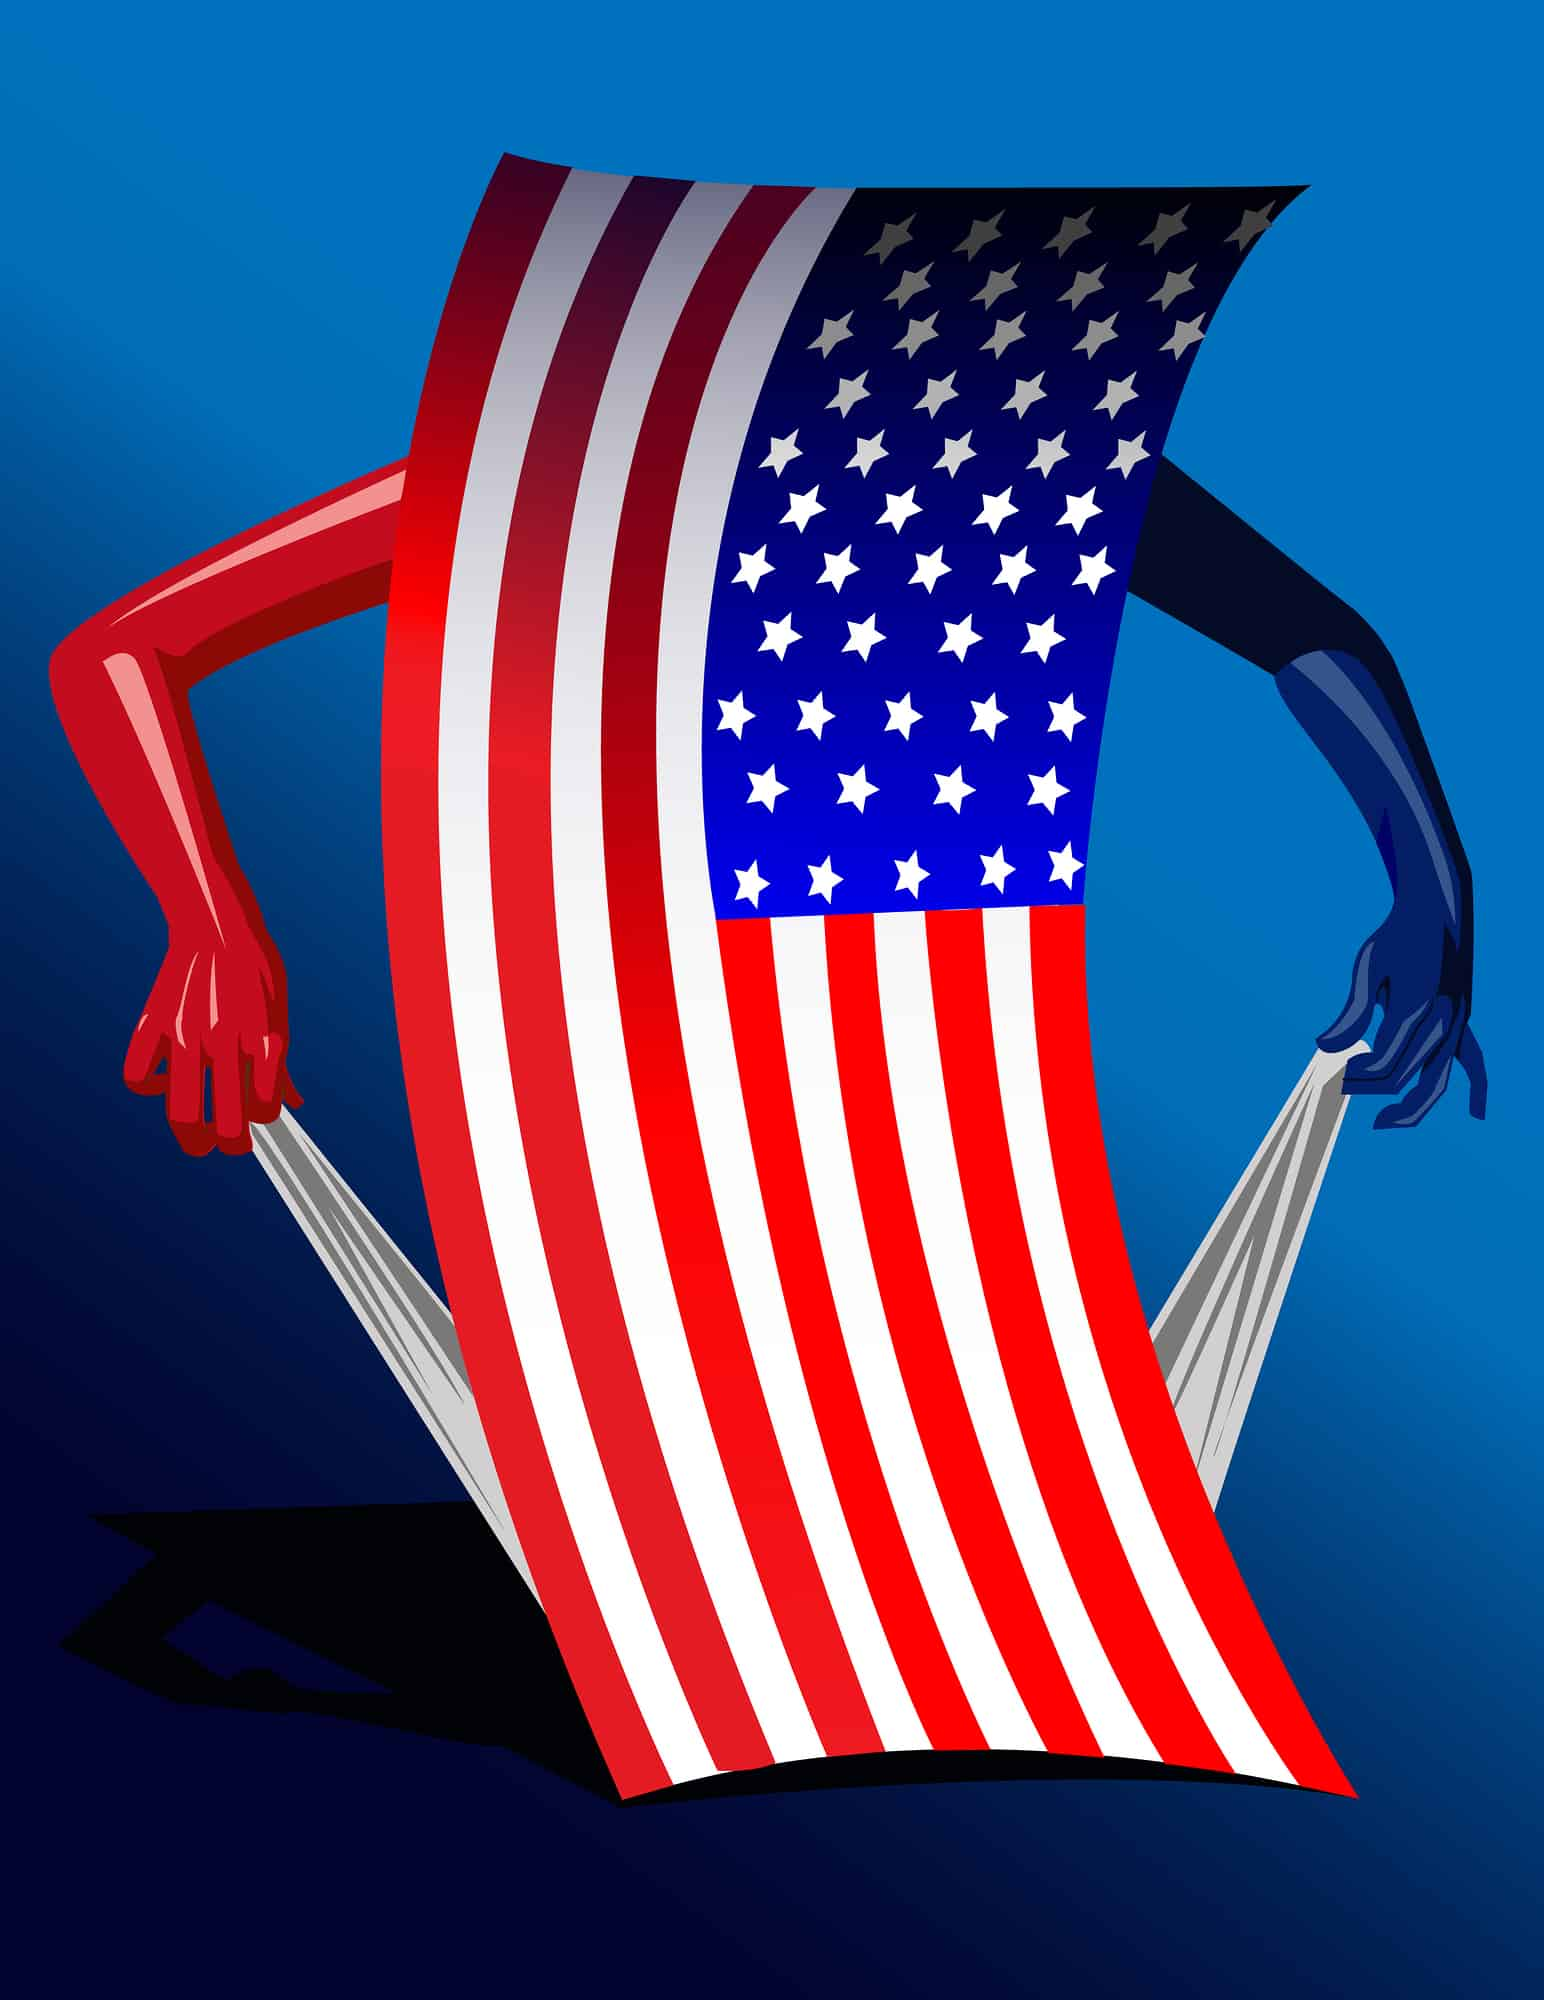 An American flag, standing on end, with human arms pulling on empty pocket indicating they are empty.